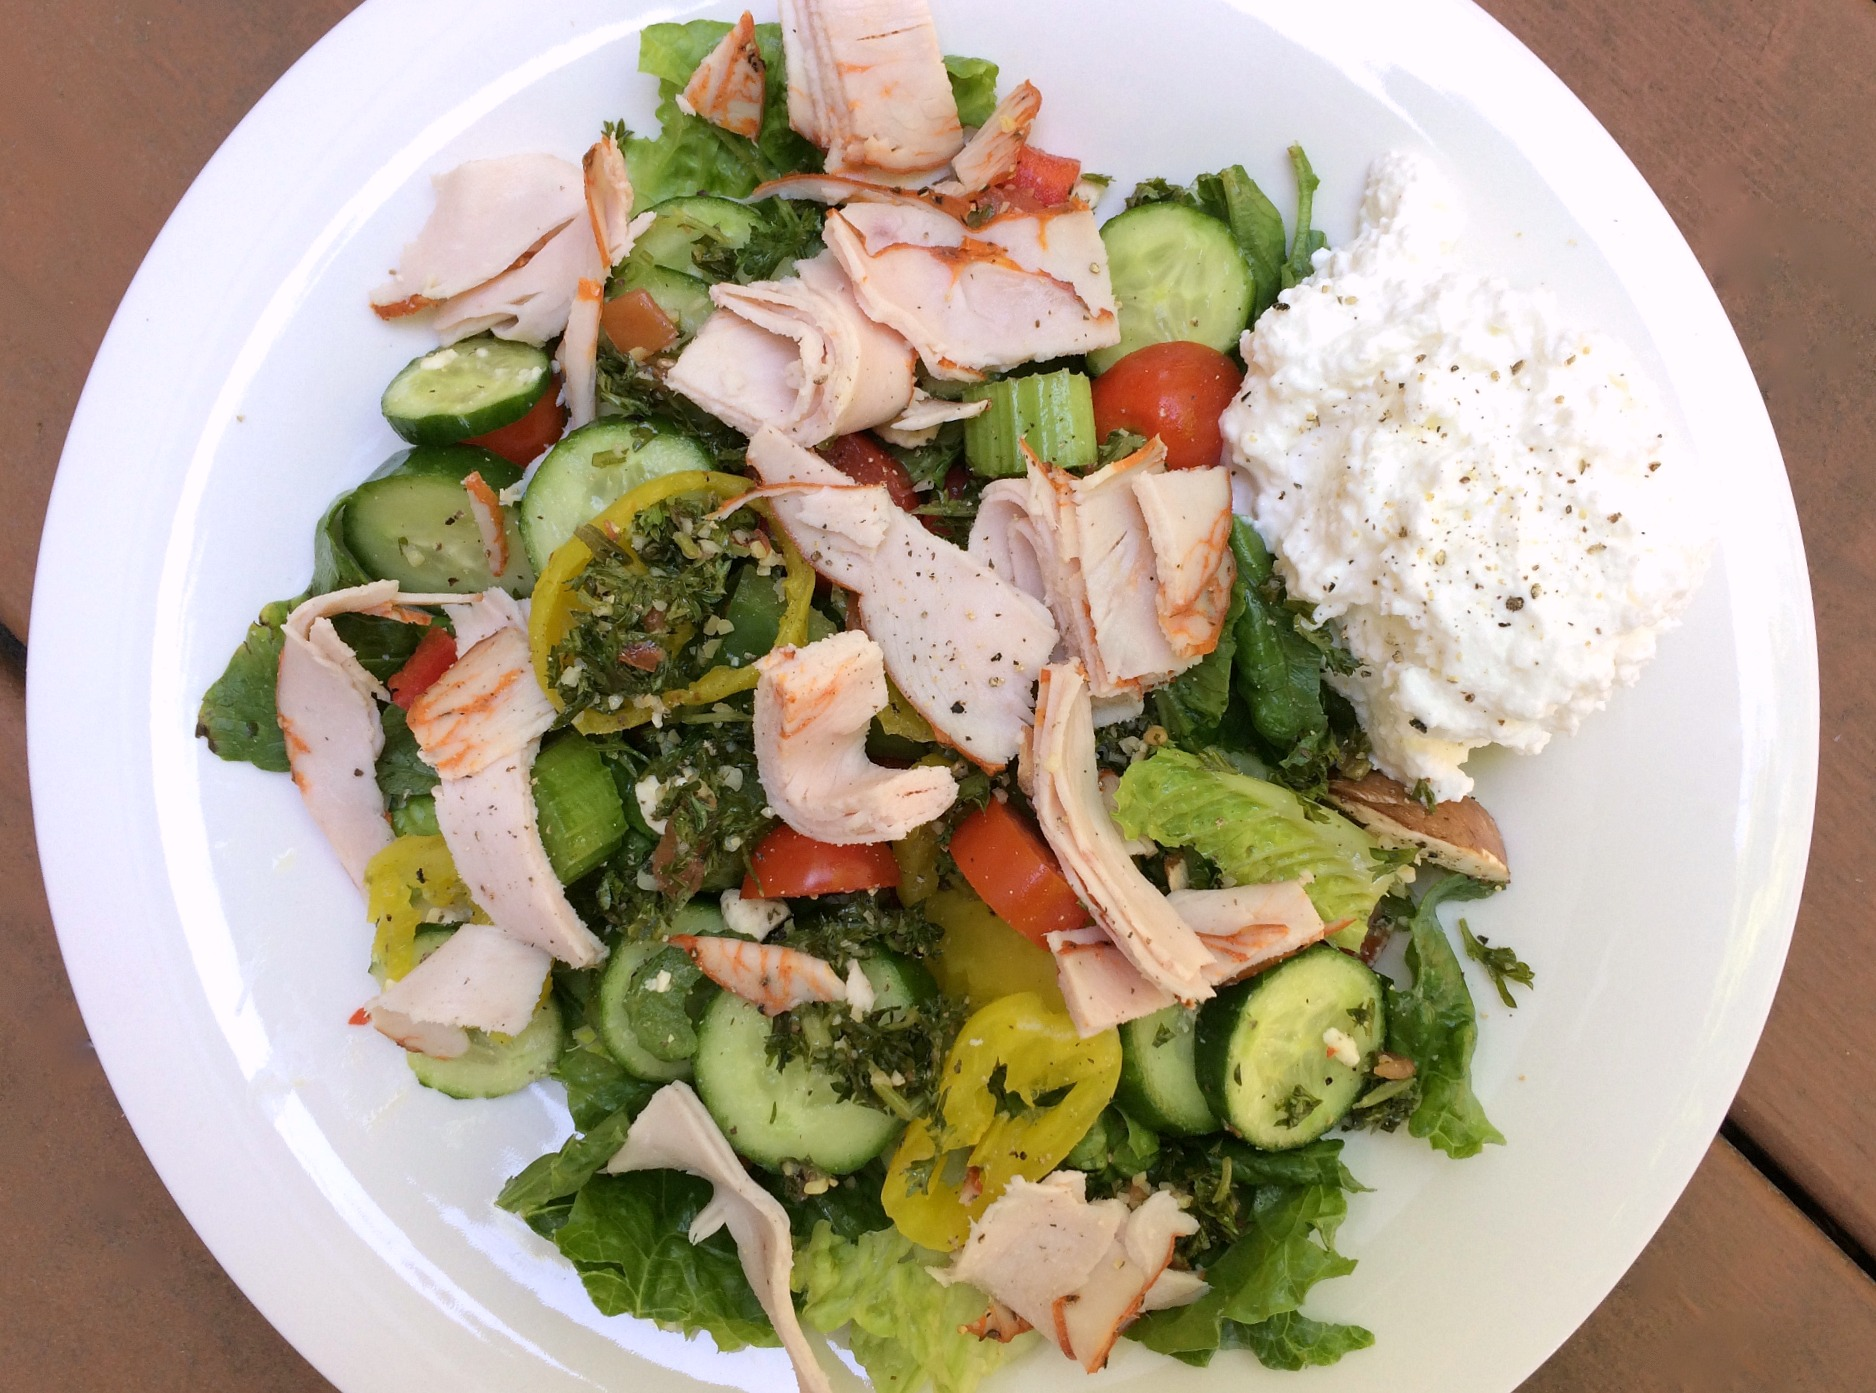 healthy turkey salad with tabbouleh and veggies